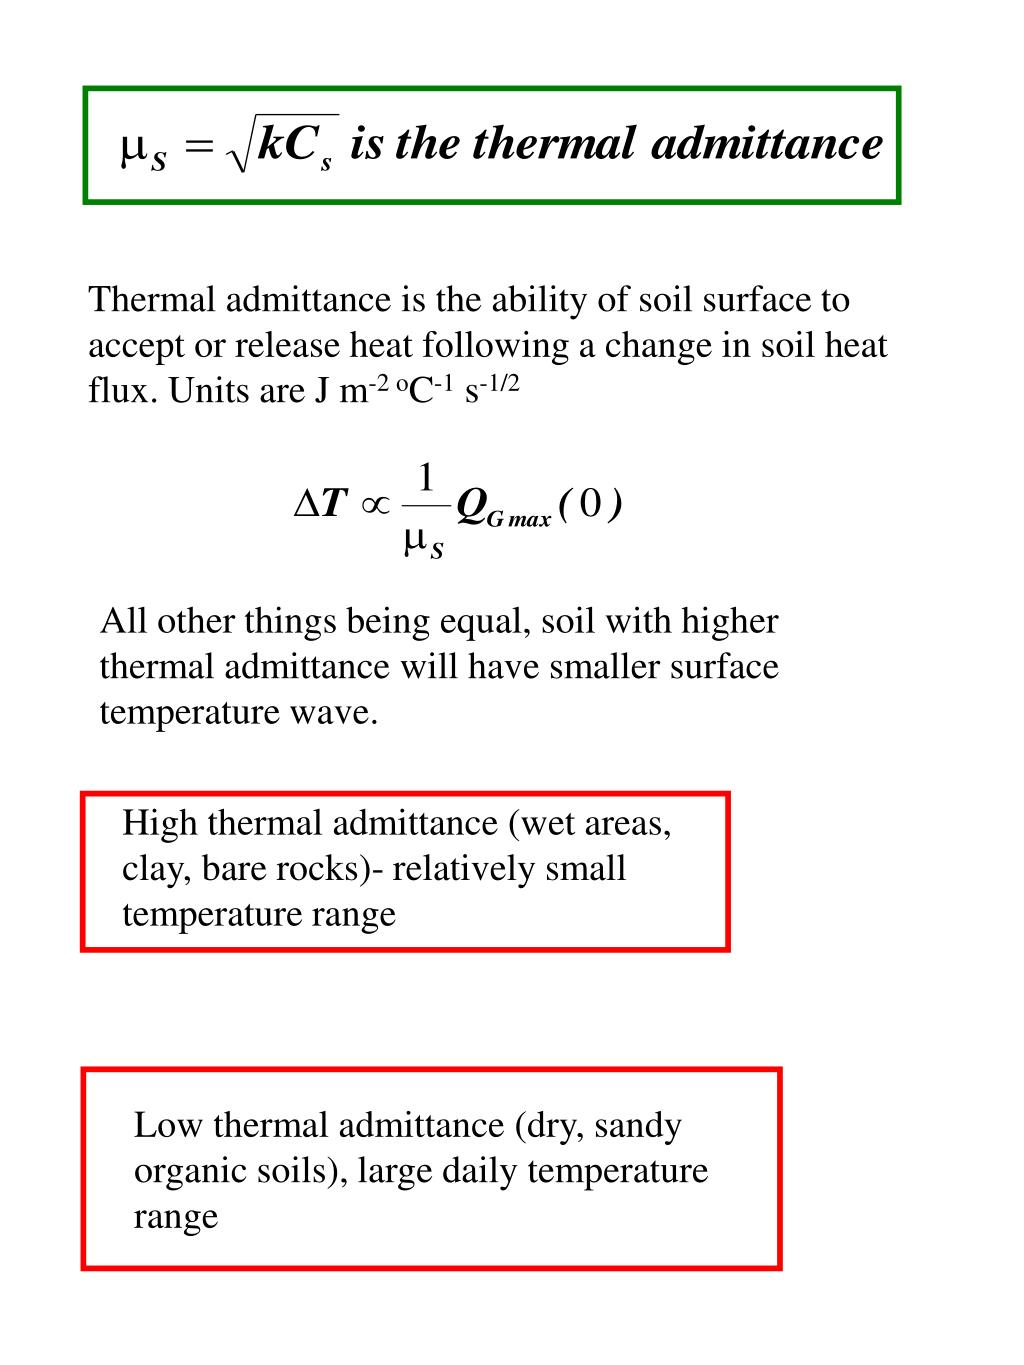 Thermal admittance is the ability of soil surface to accept or release heat following a change in soil heat flux. Units are J m